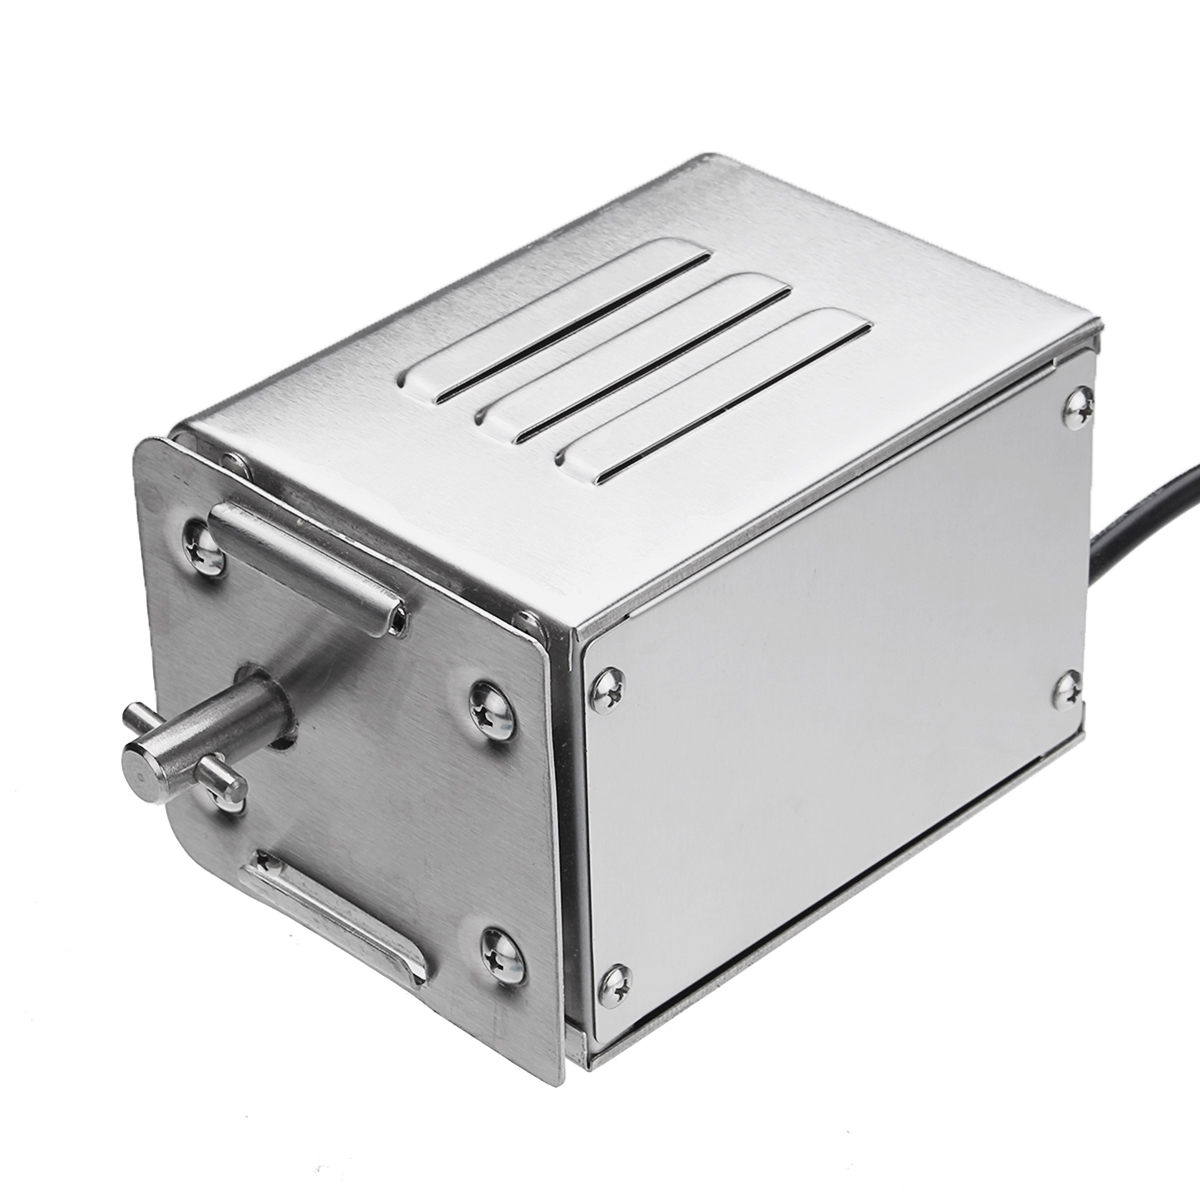 AC220-240V 15W SP-S40 Stainless Steel Barbeque BBQ Spit Rotisserie Motor For Roasted Lambs Piglets Chicken fan